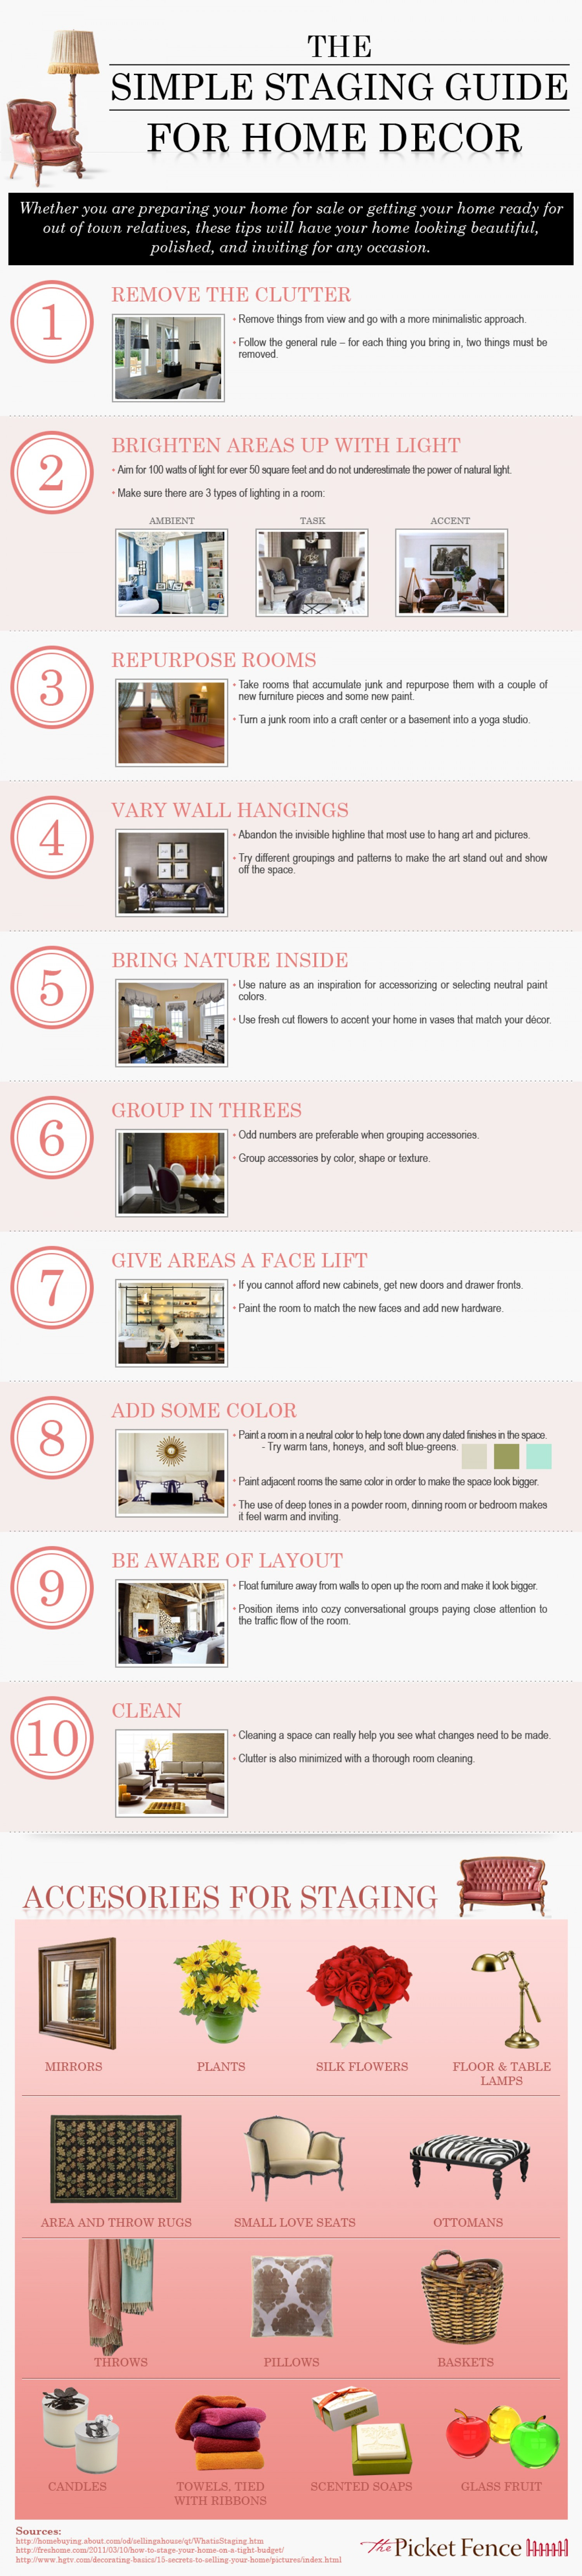 the-simple-staging-guide-for-home-decor_5126aa4e2fed7_w1500